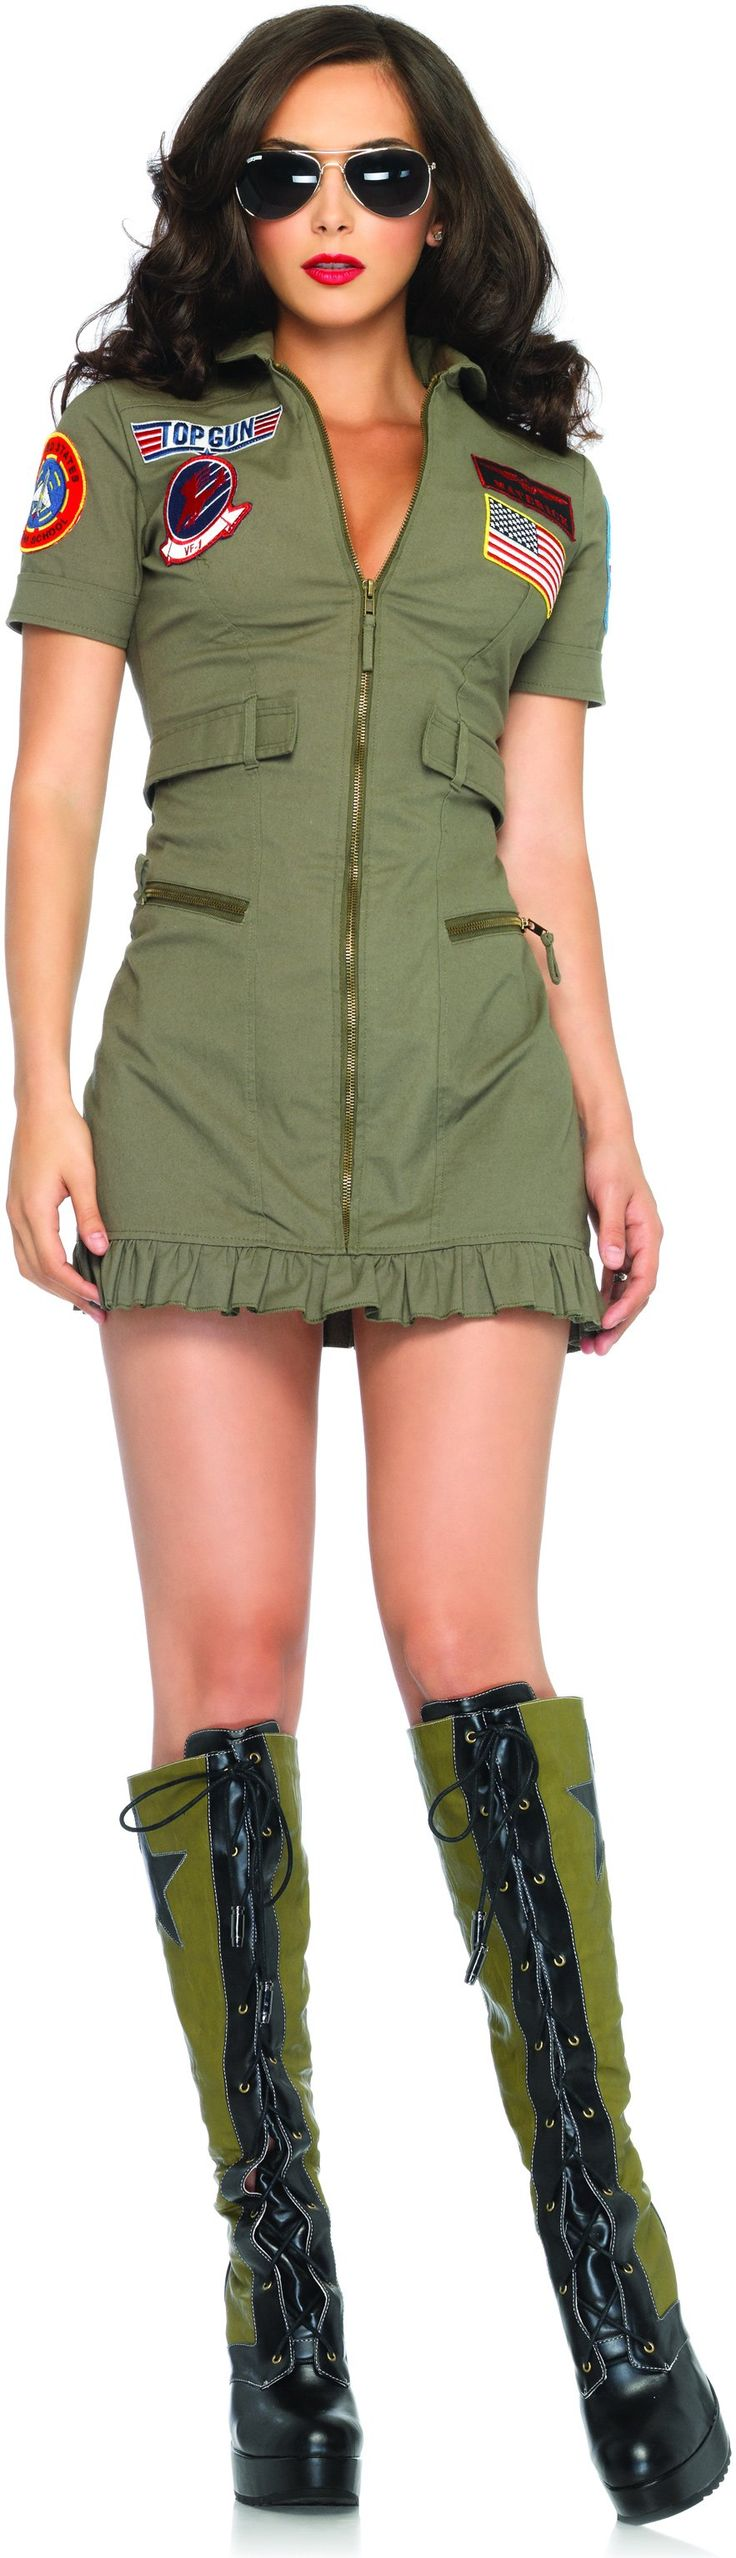 Top Gun Women's Flight Dress Adult Costume...may have to get this for a certain someone;)